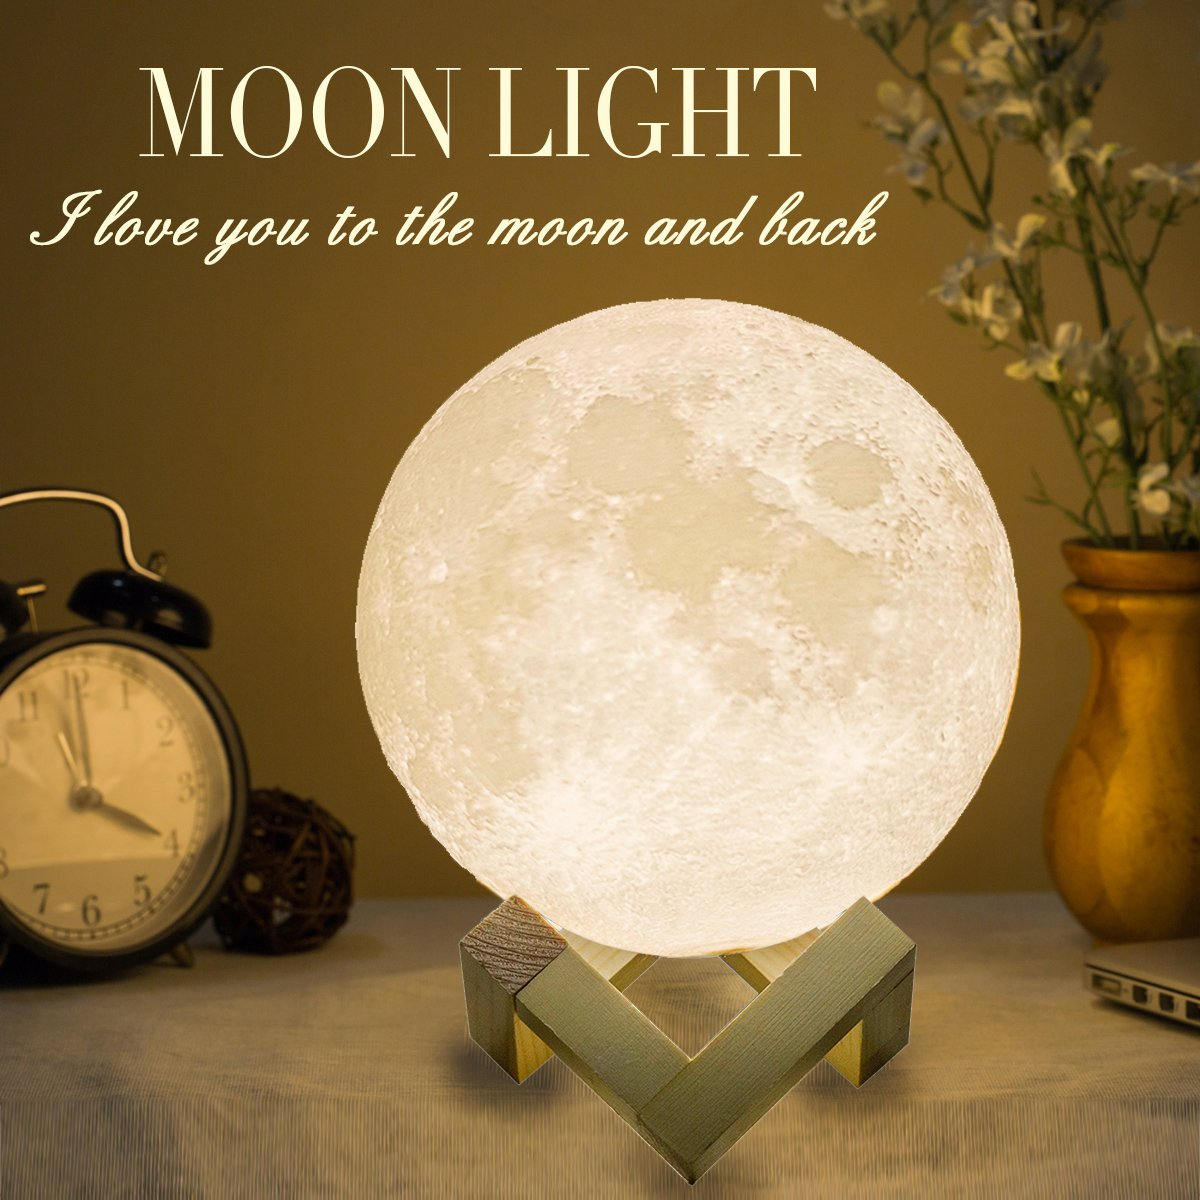 Mydethun Moon Lamp Moon Light Night Light for Kids Gift for Women USB Charging and Touch Control Brightness 3D Printed Warm and Cool White Lunar Lamp(7.1 in Moon lamp with Stand)